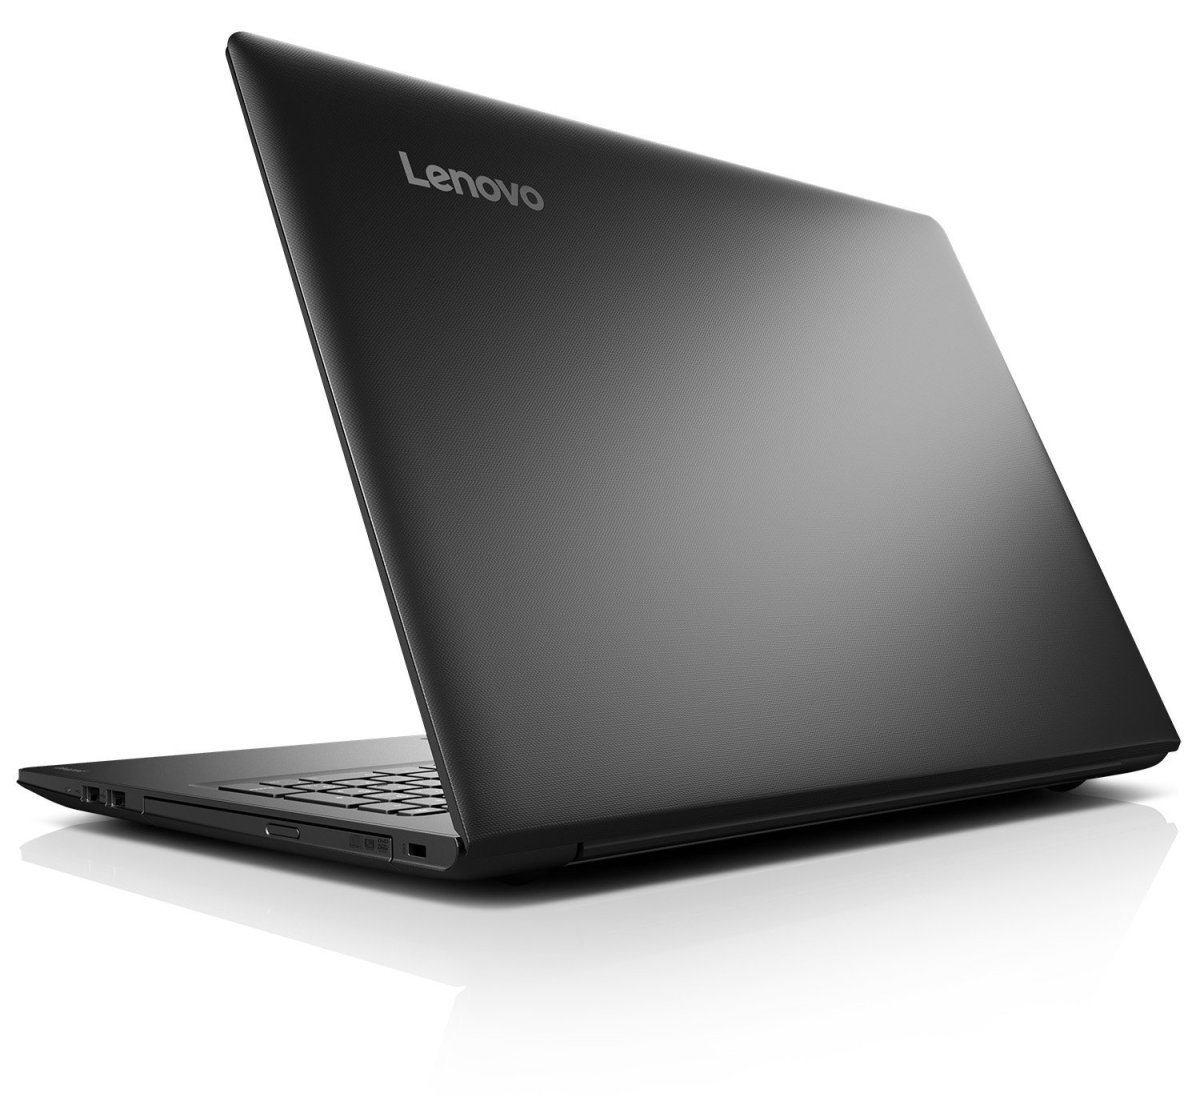 Lenovo Ideapad 310 - How To Fix It If It Crashes